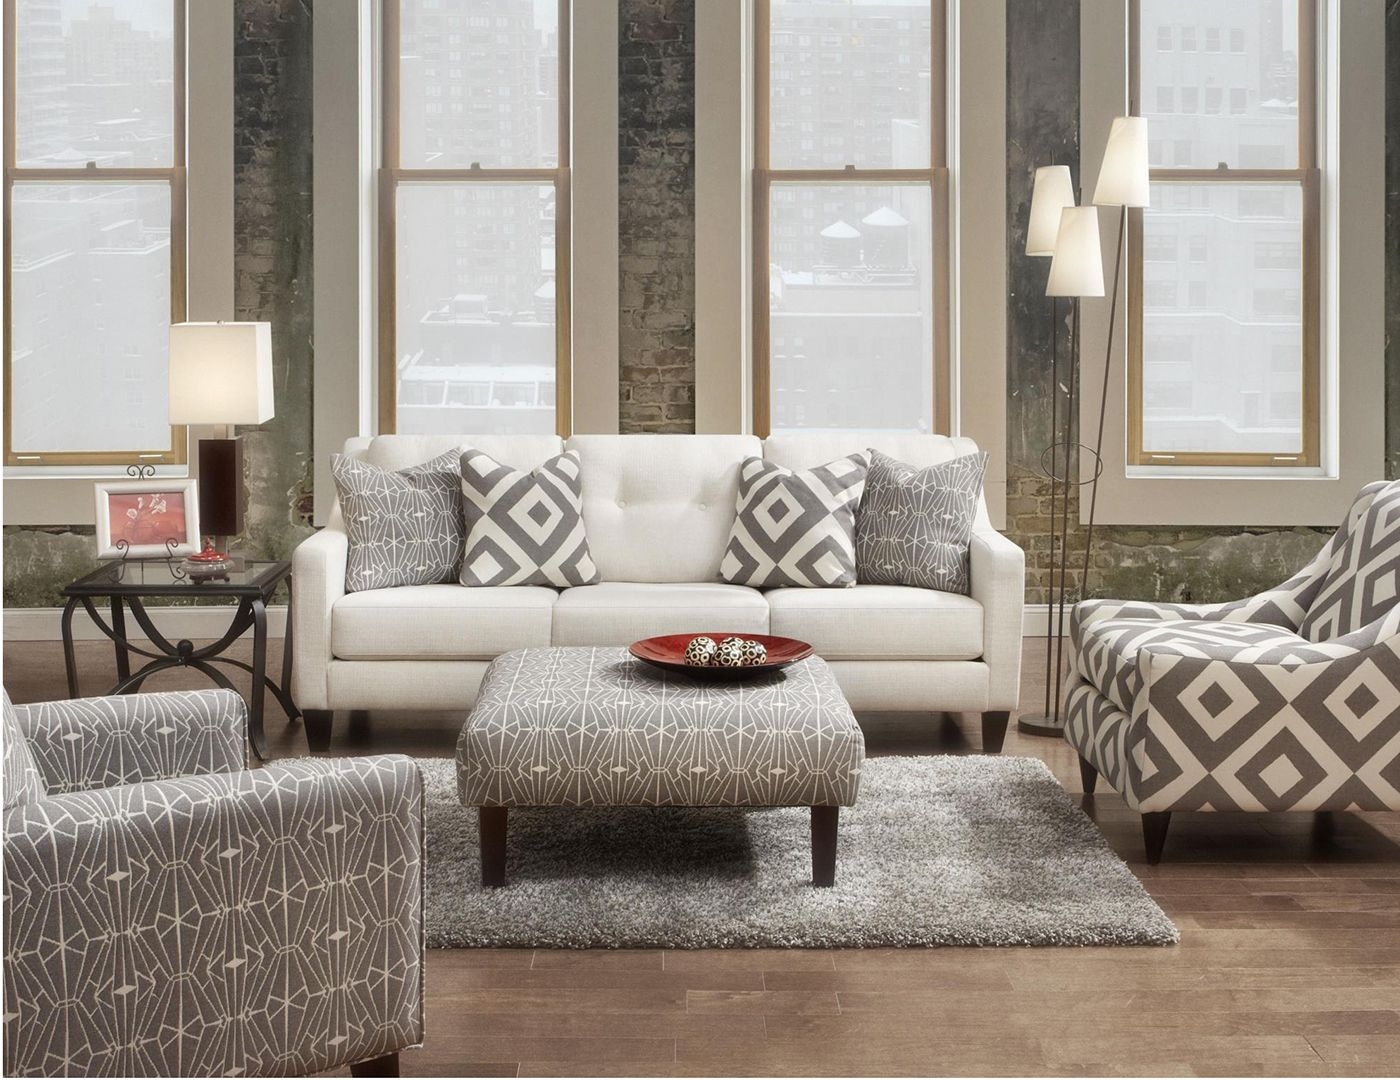 Furniture upholstery group bay city saginaw - Fusion Furniture Emblem Contemporary Sofa With Track Arms